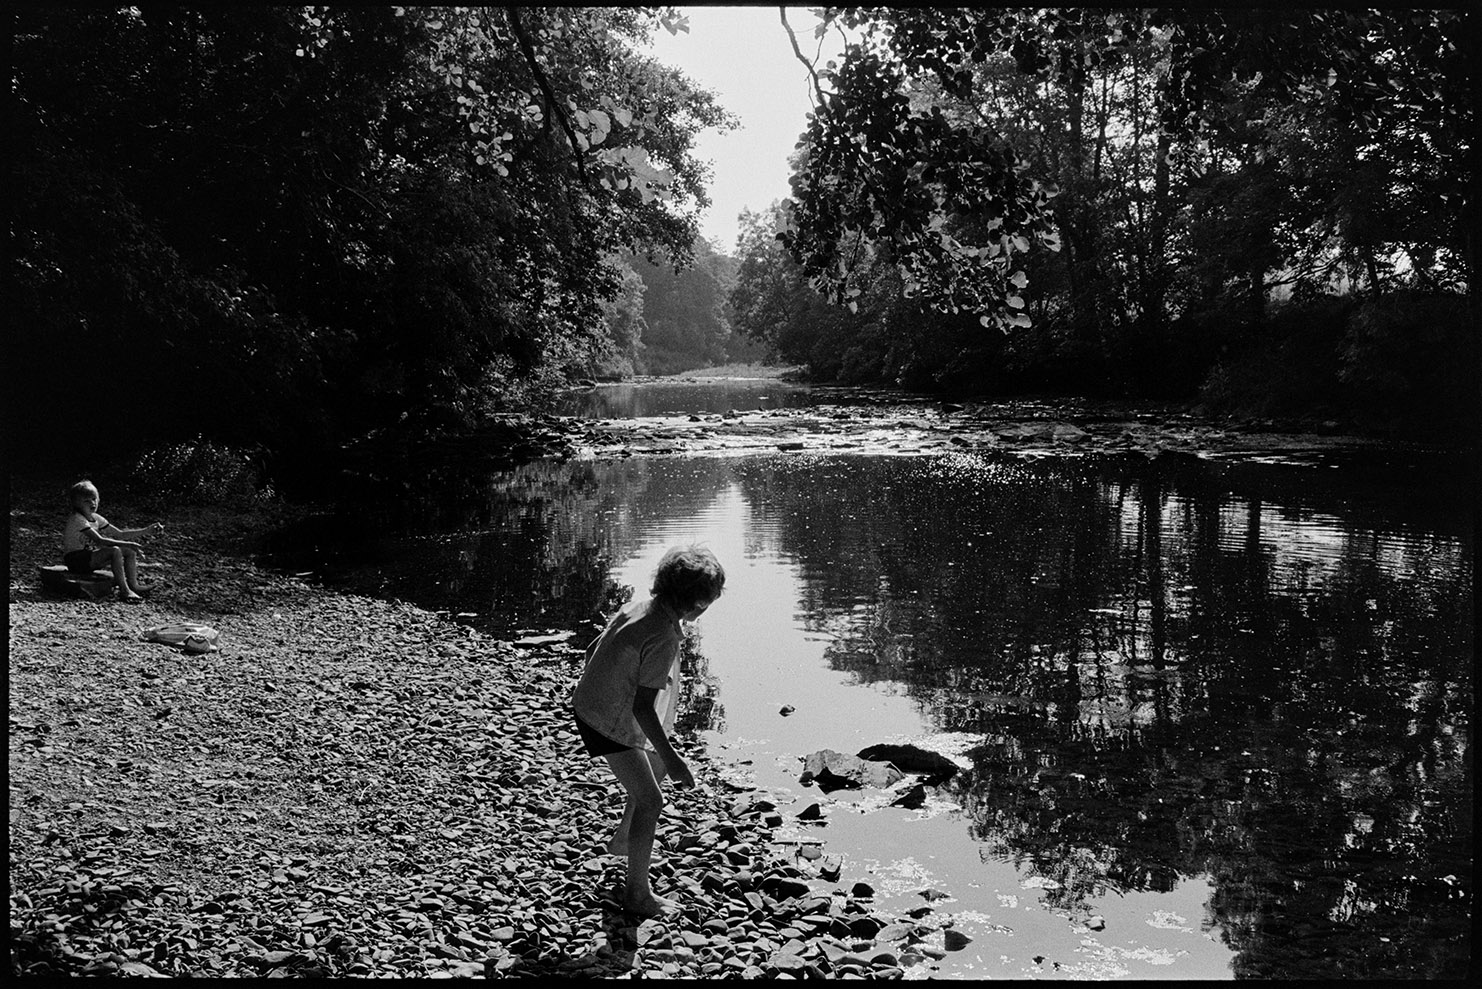 Children beside river, skimming stones Dolton, Halsdon, August, 1976.